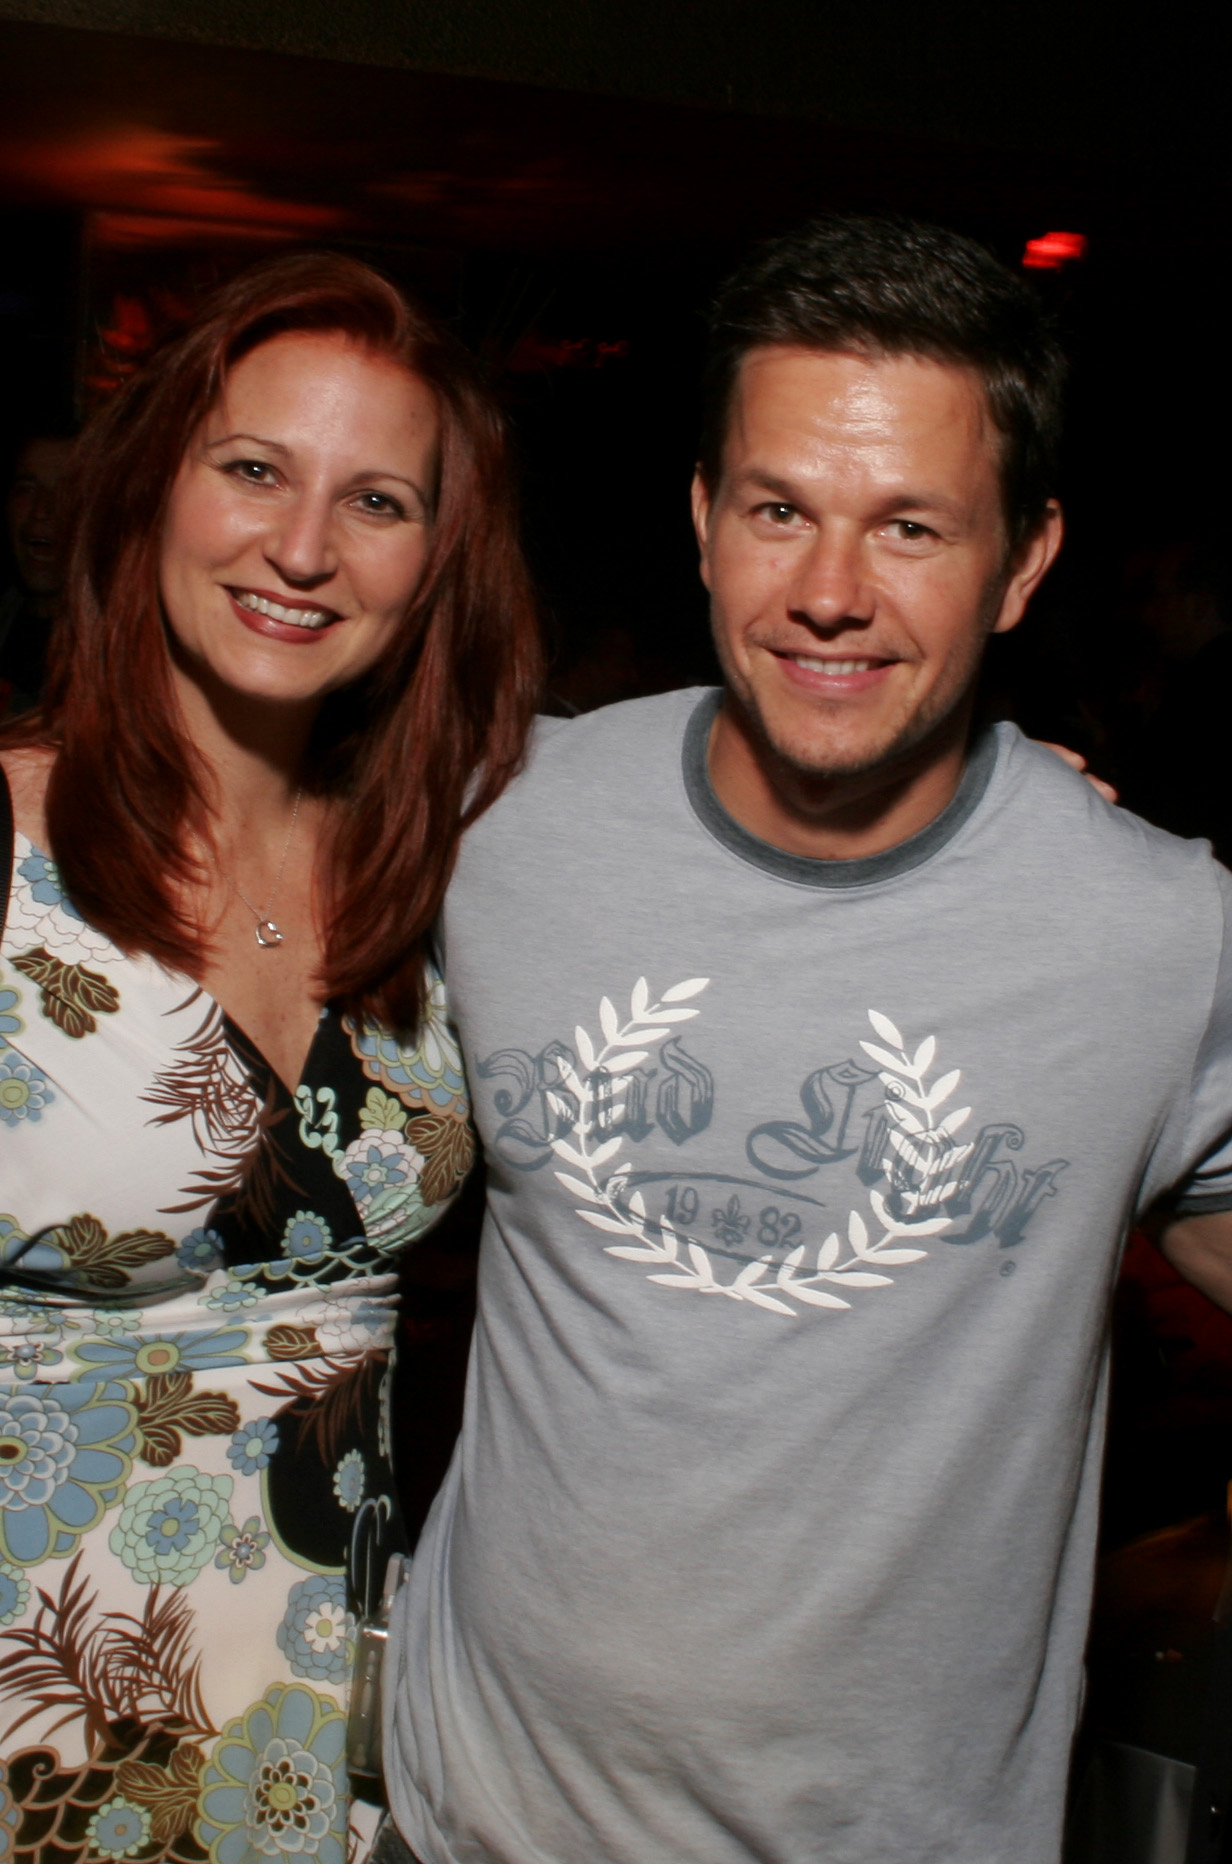 Mark Wahlburg @ Entourage Event, NYC